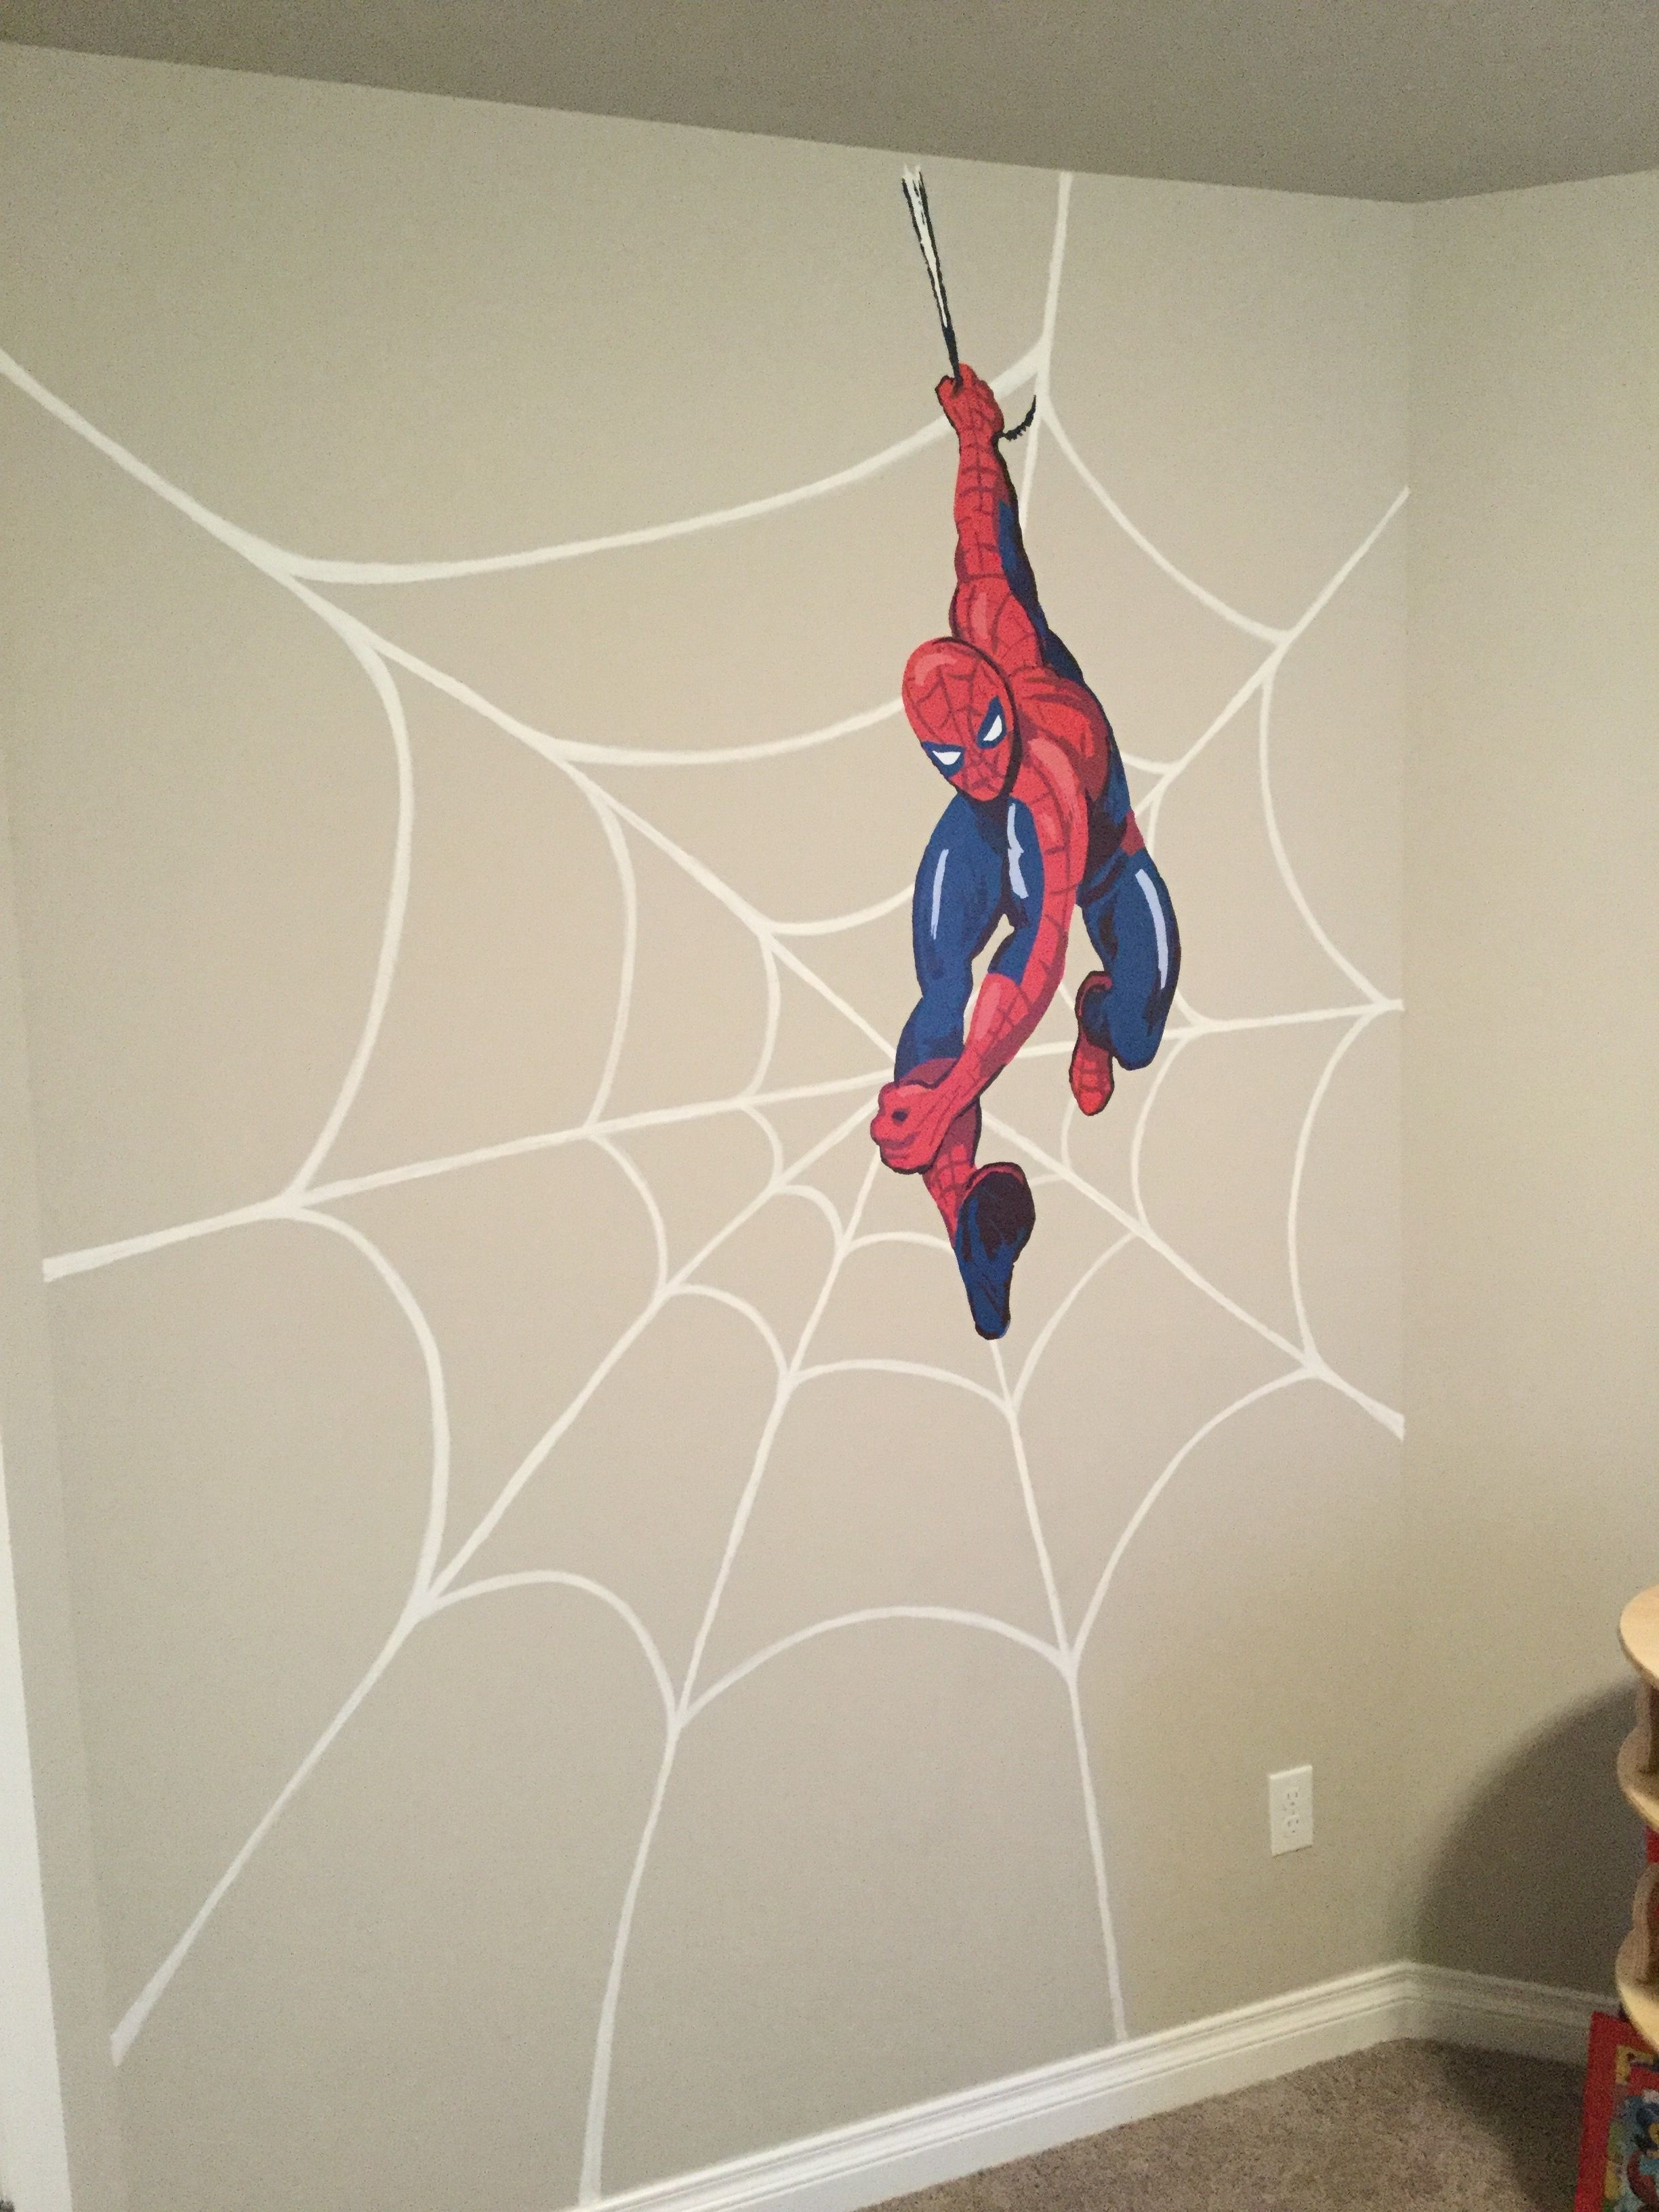 Diy Superhero Wall Art! Handpainted Spider Web With Pottery Barn pertaining to Superhero Wall Art (Image 6 of 20)